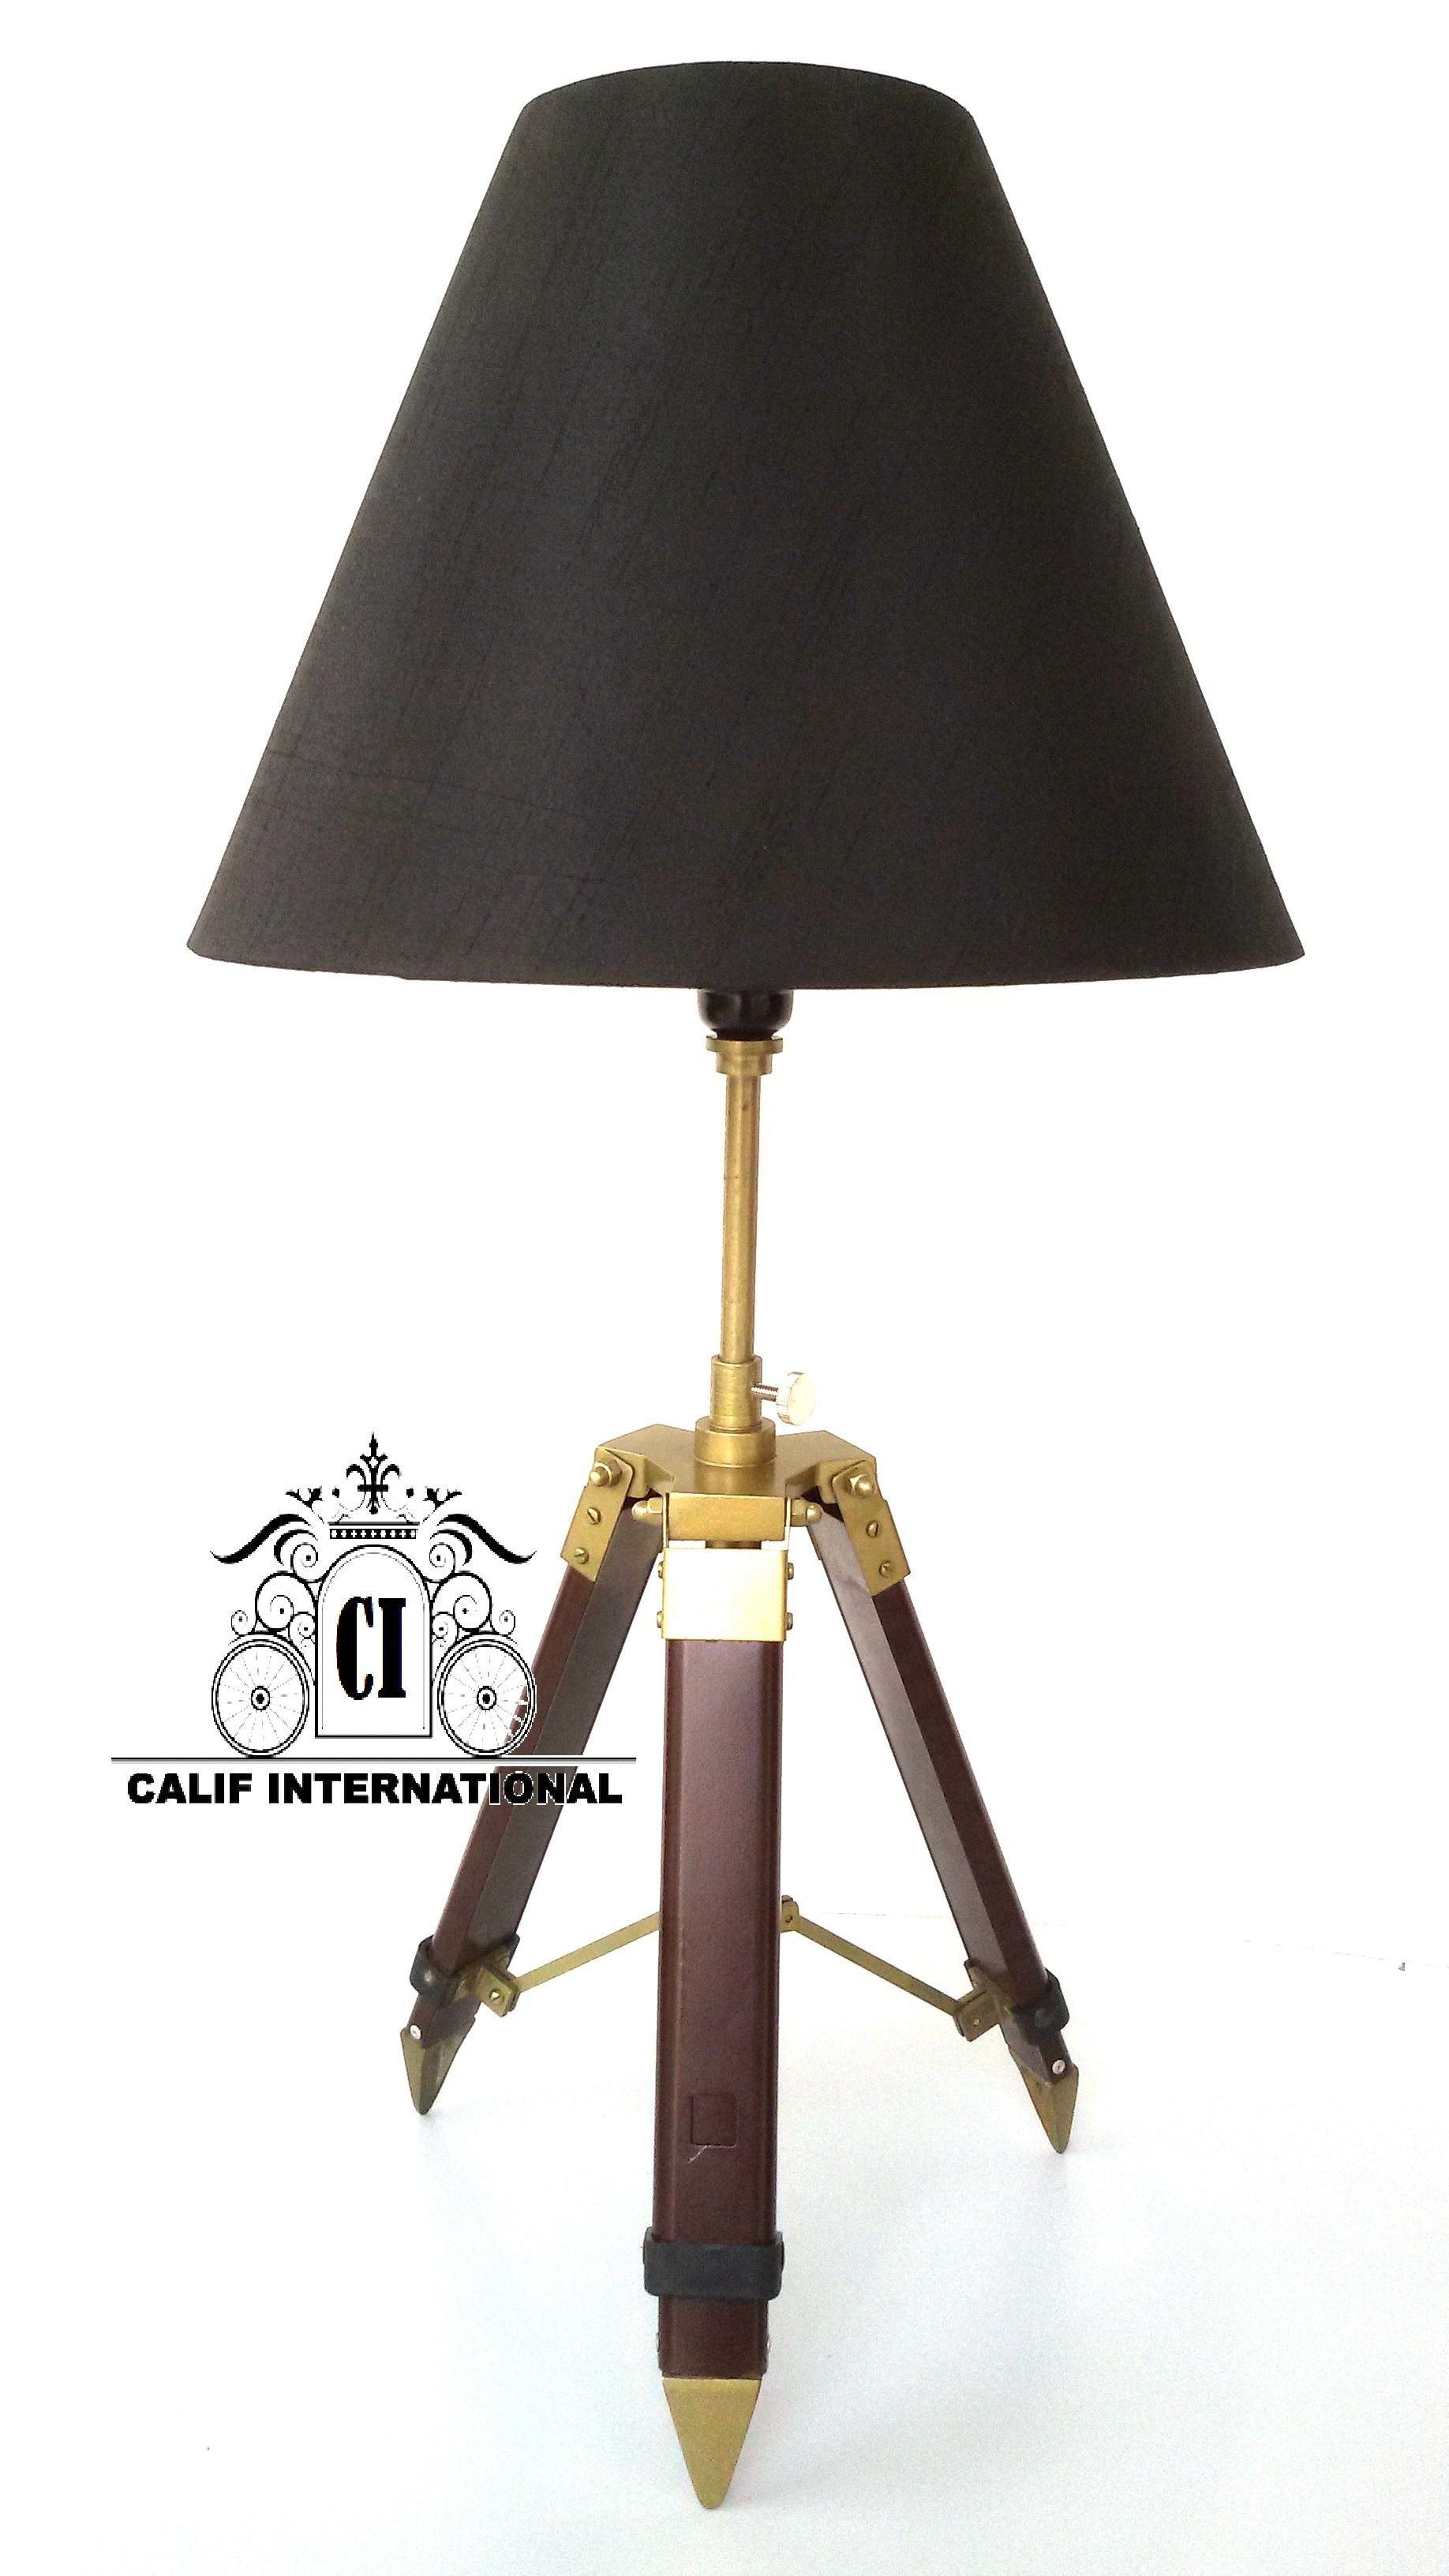 Pin On Table Lamps Tripod Stand Without Shade